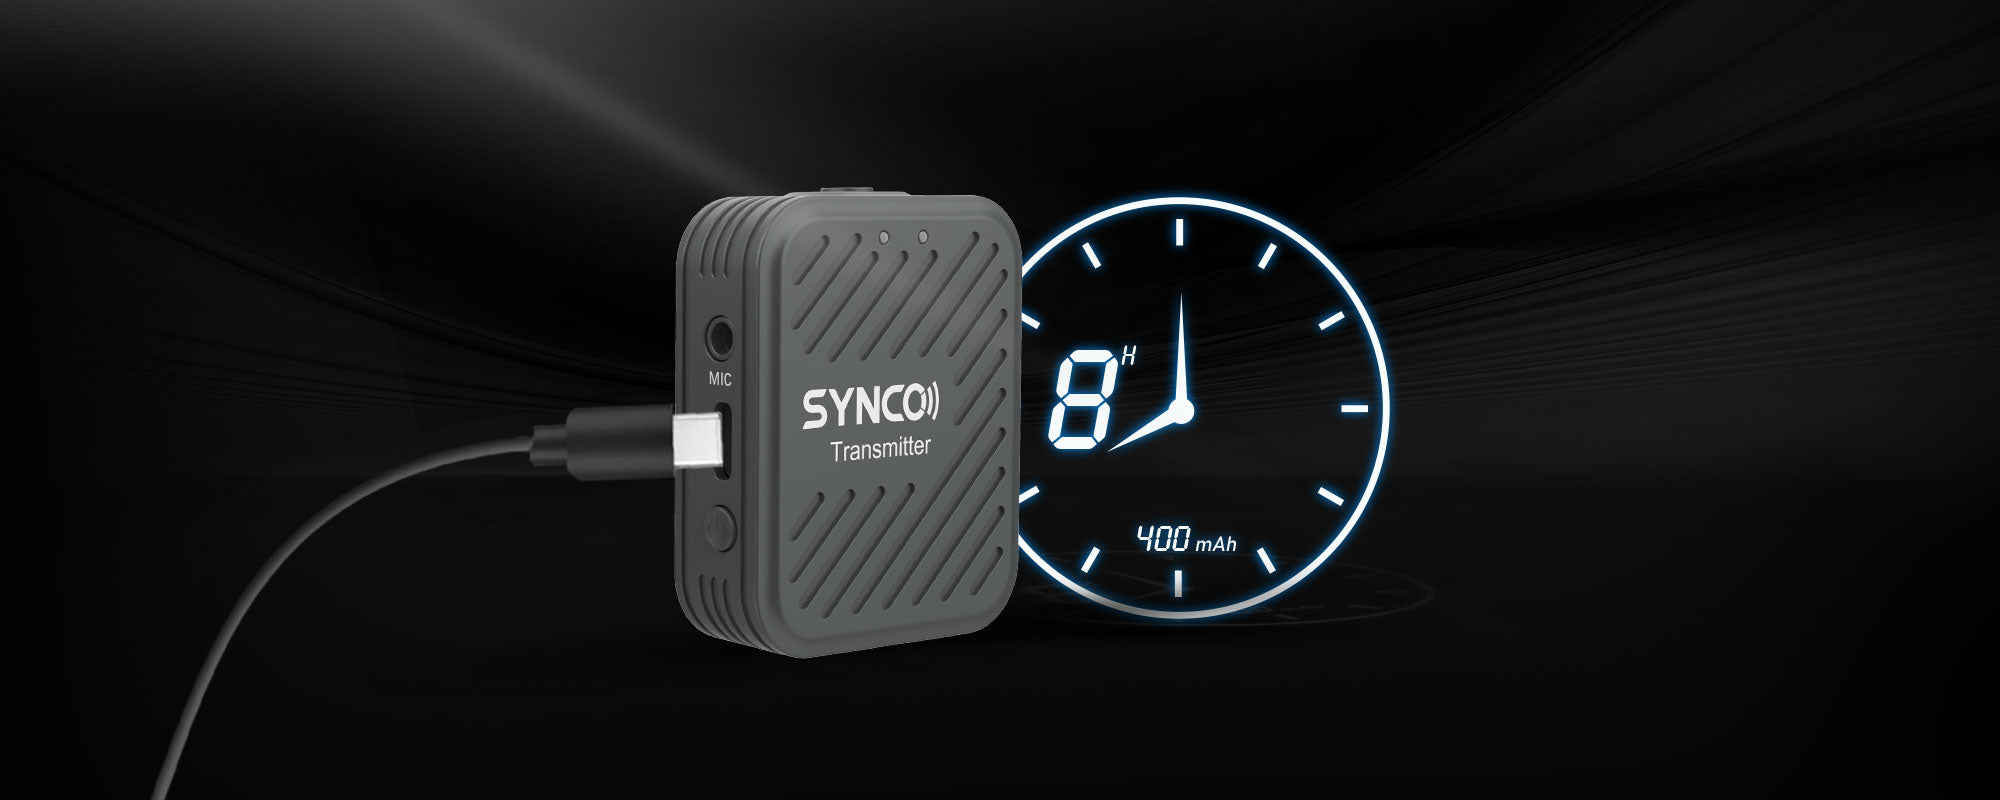 SYNCO G1(A1) Big Battery Capacity to Support All Day Long